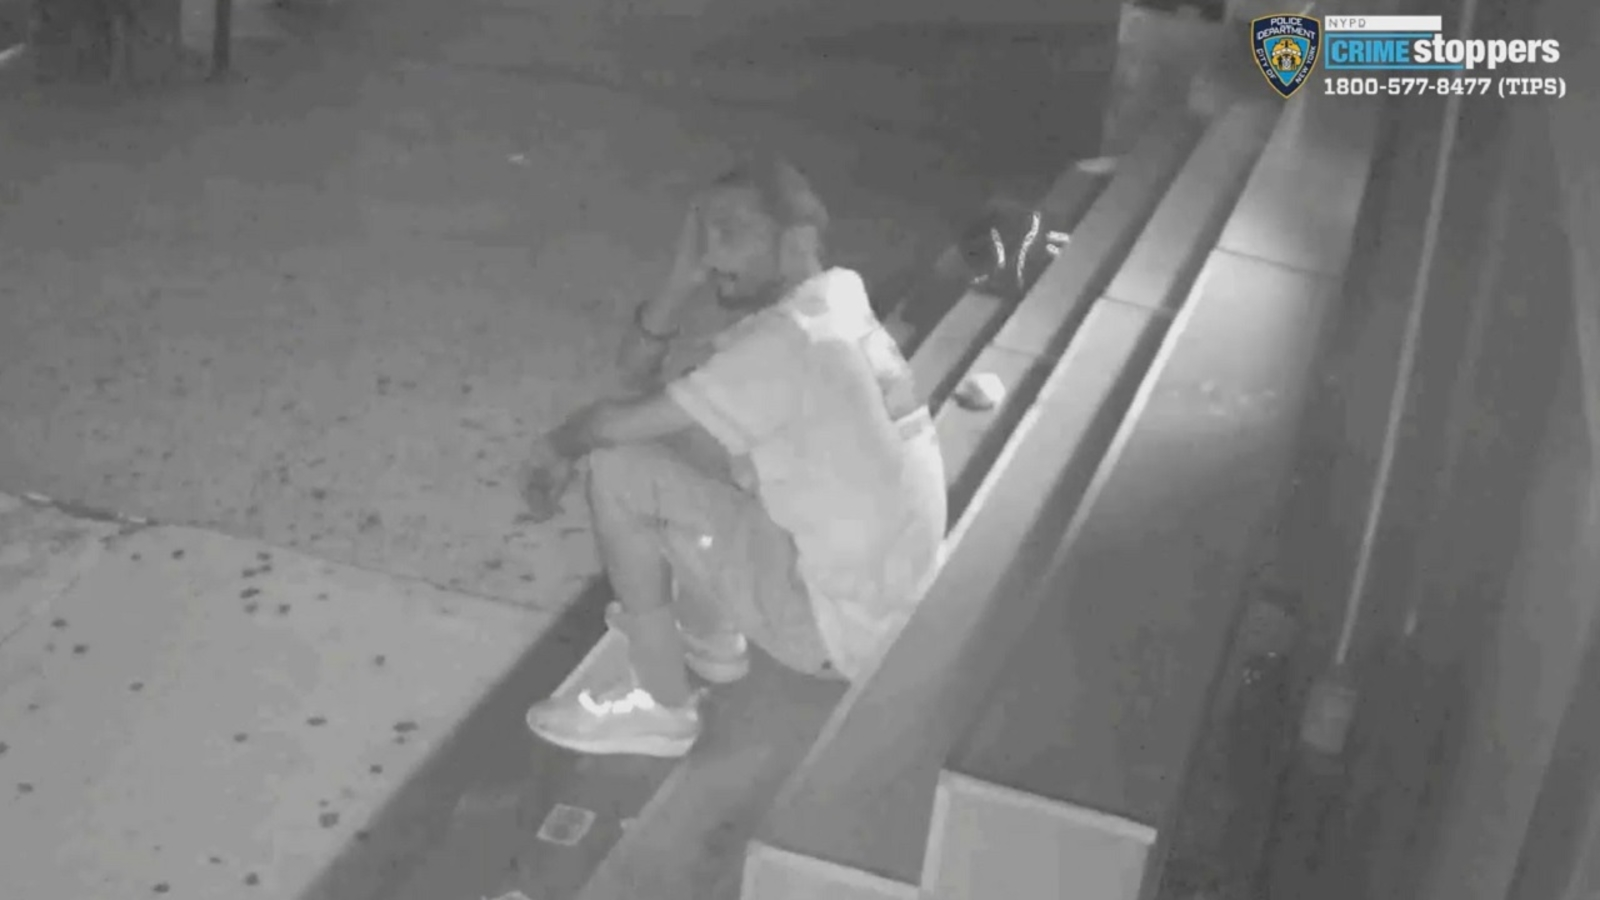 Police: Man robs $5,000 from Queens bagel store